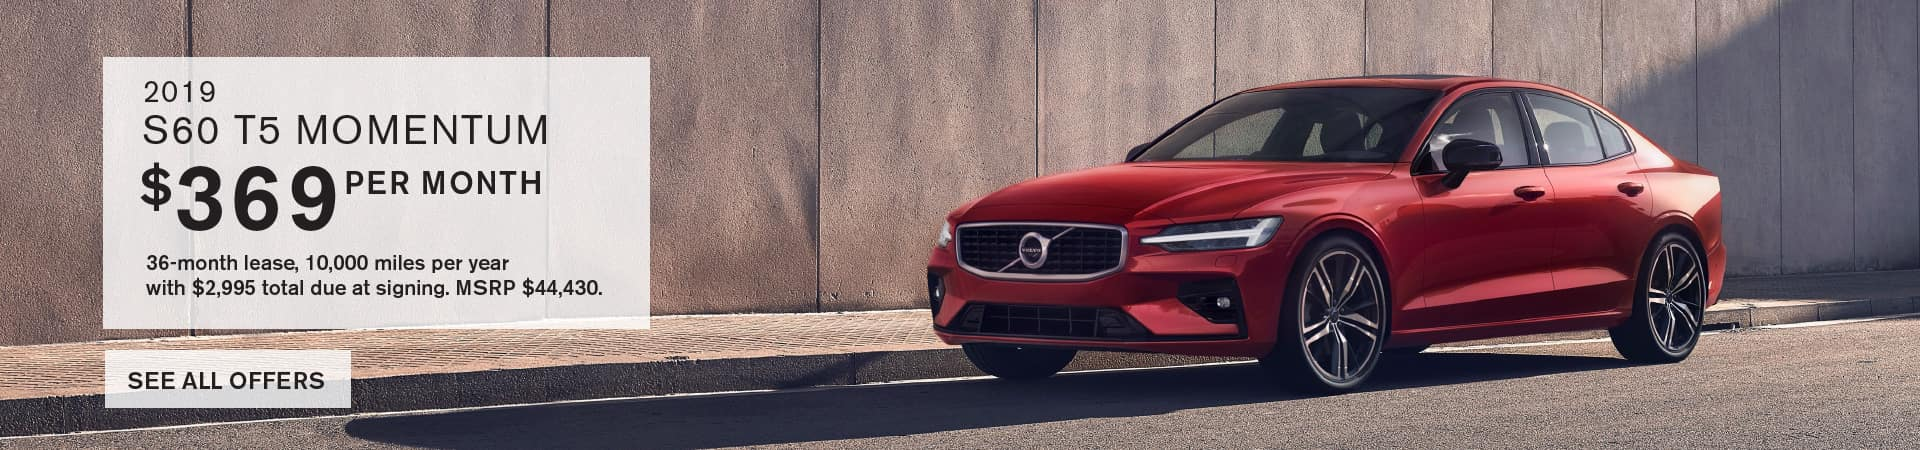 Autobahn Volvo Fort Worth | 2019 S60 Lease Special